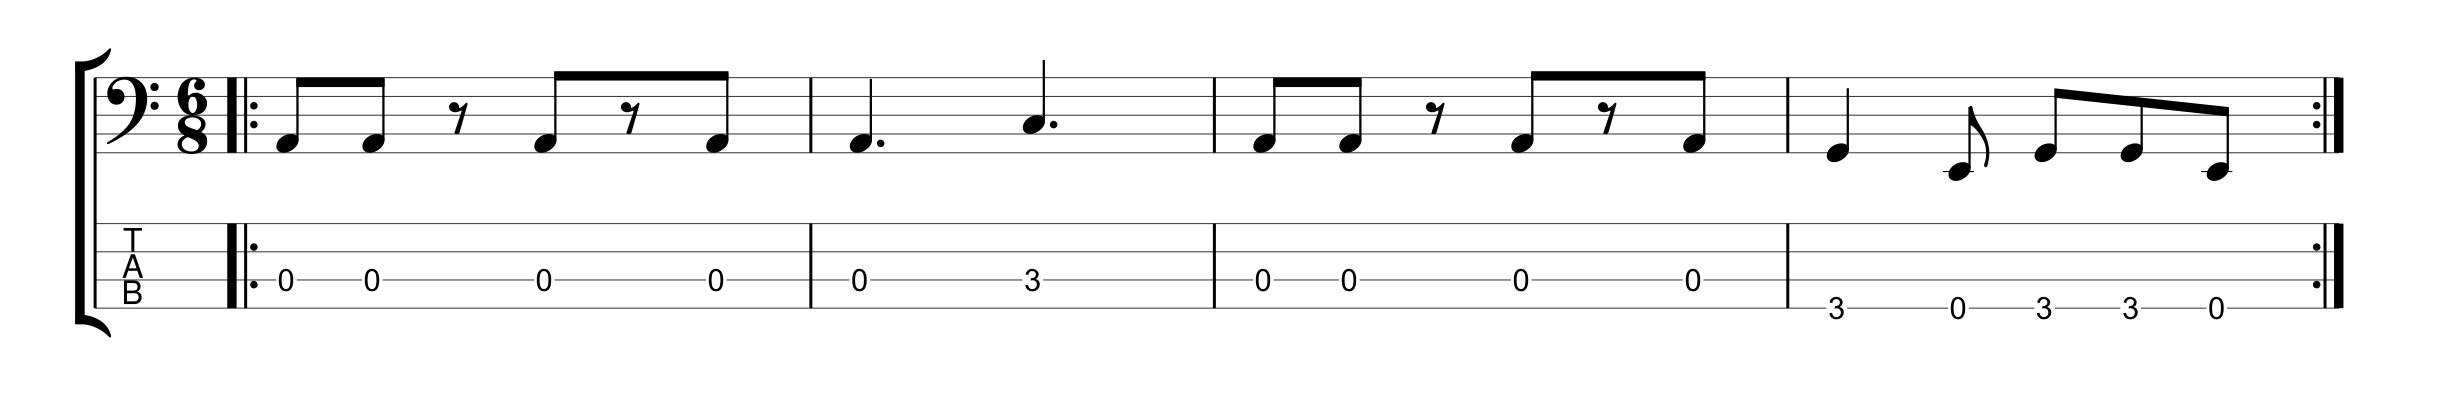 6/8 Time Signature - Example 3